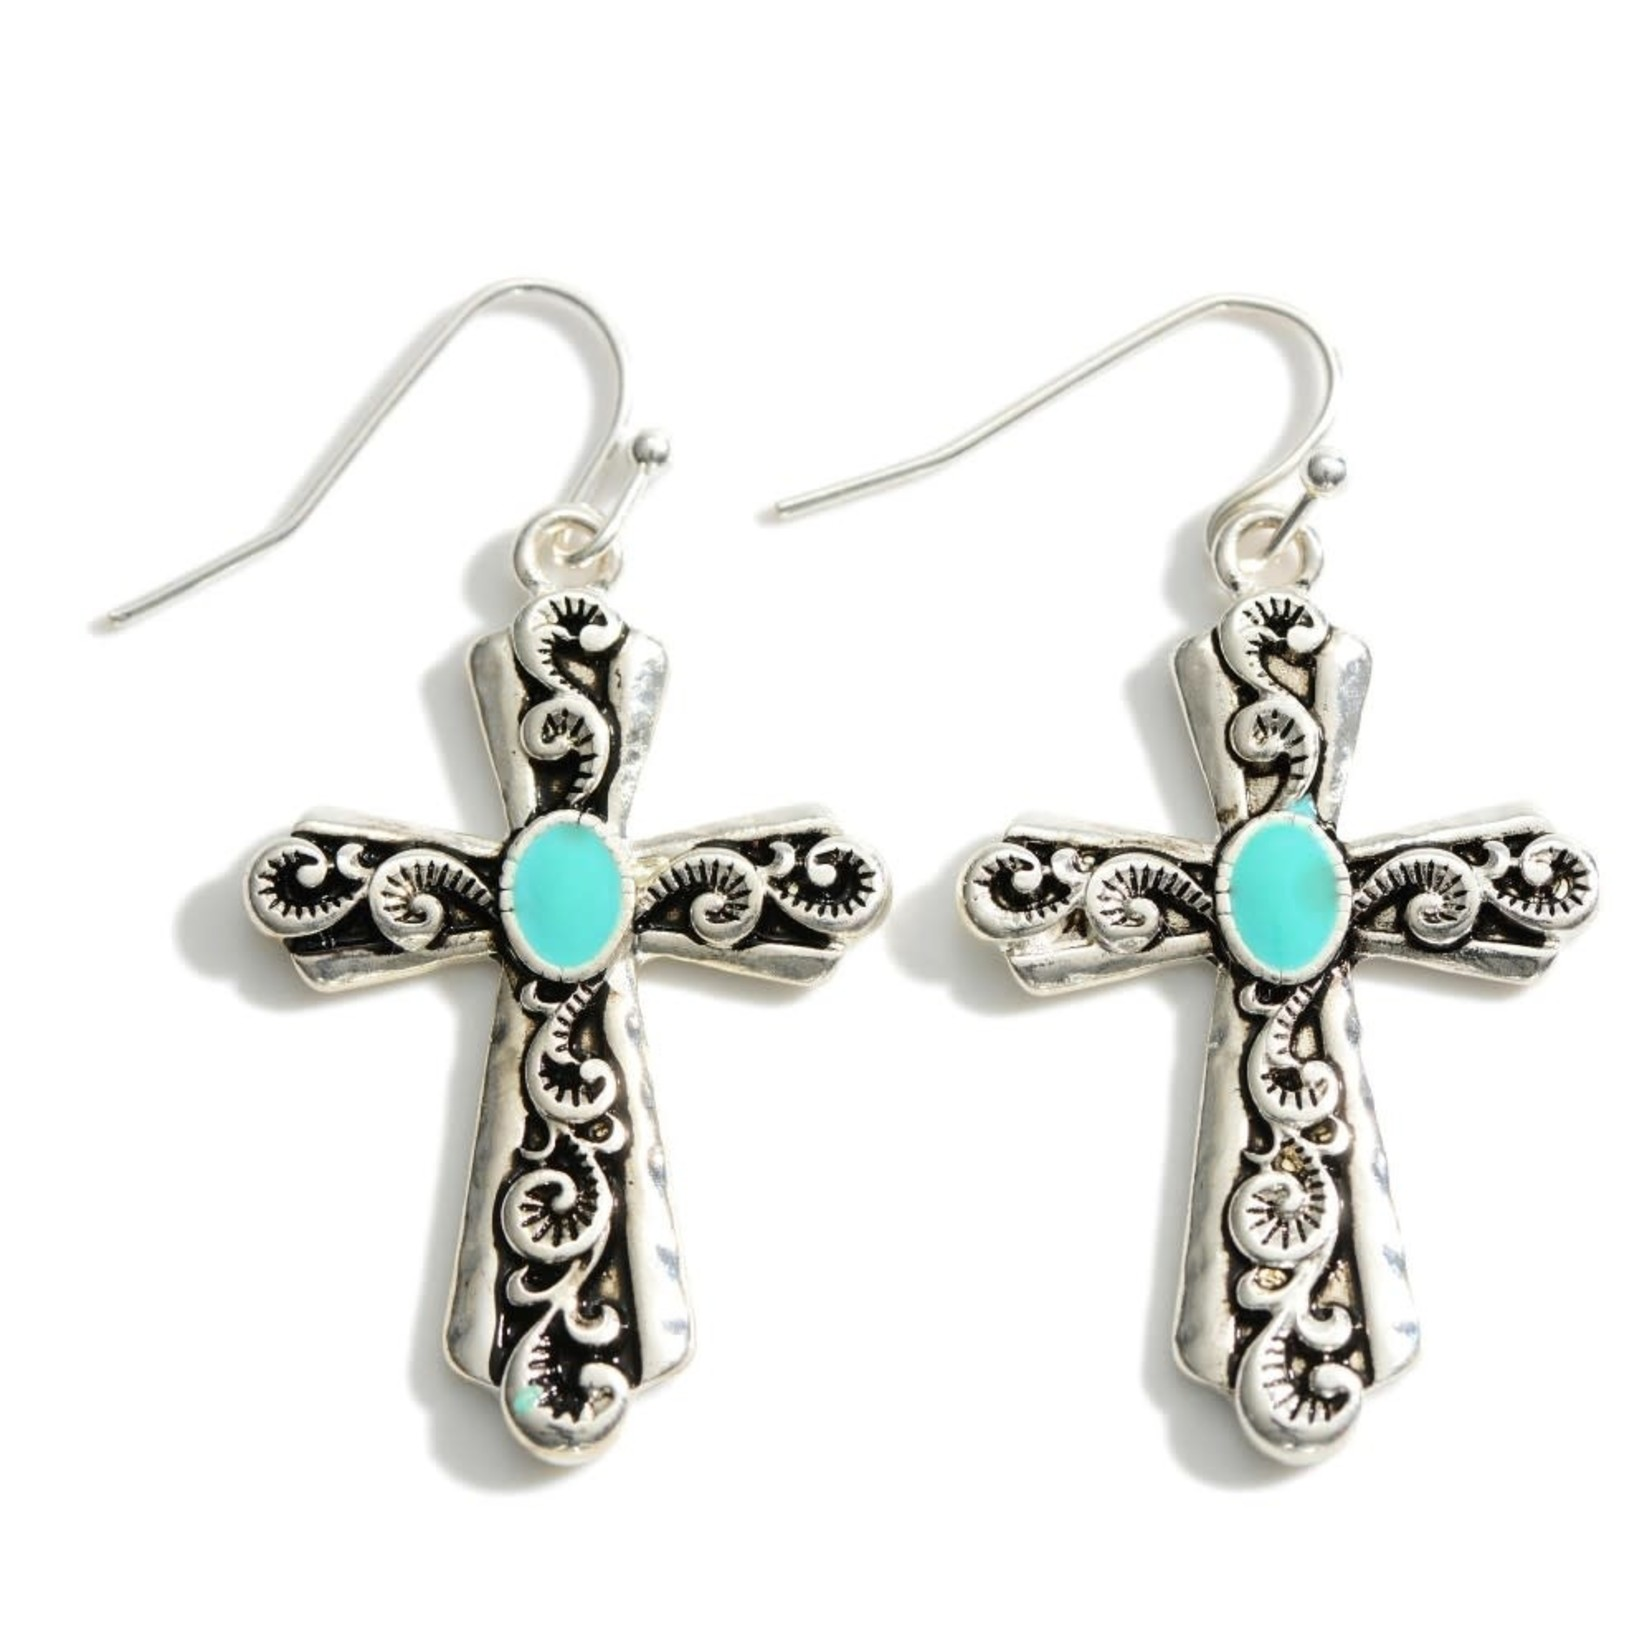 Silver Engraved w/Turquoise Accent Cross ER